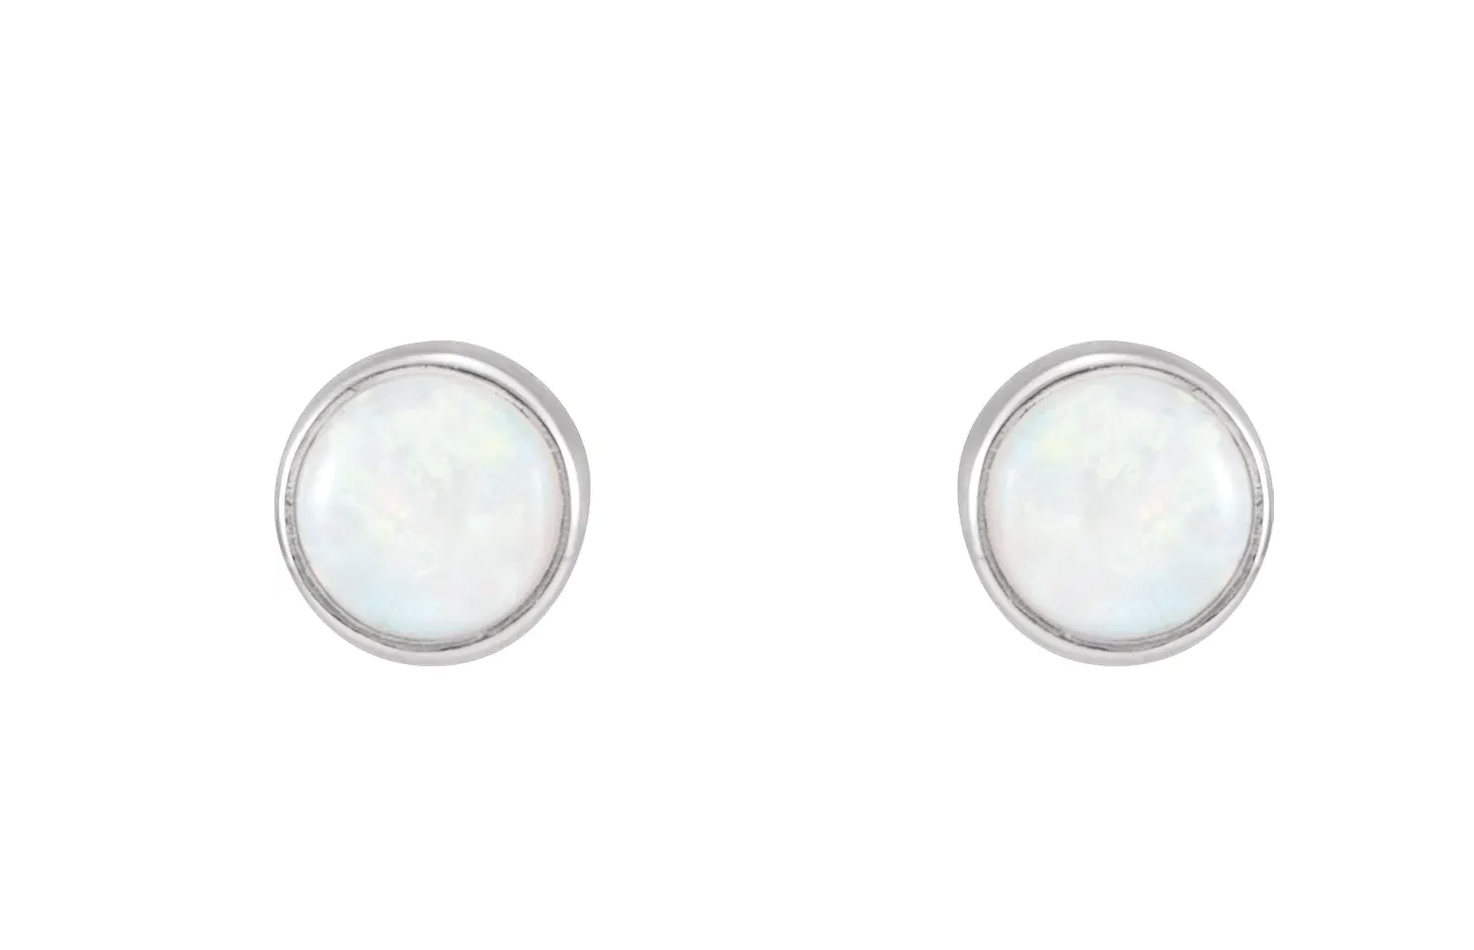 14kt white gold opal bezel stud earrings